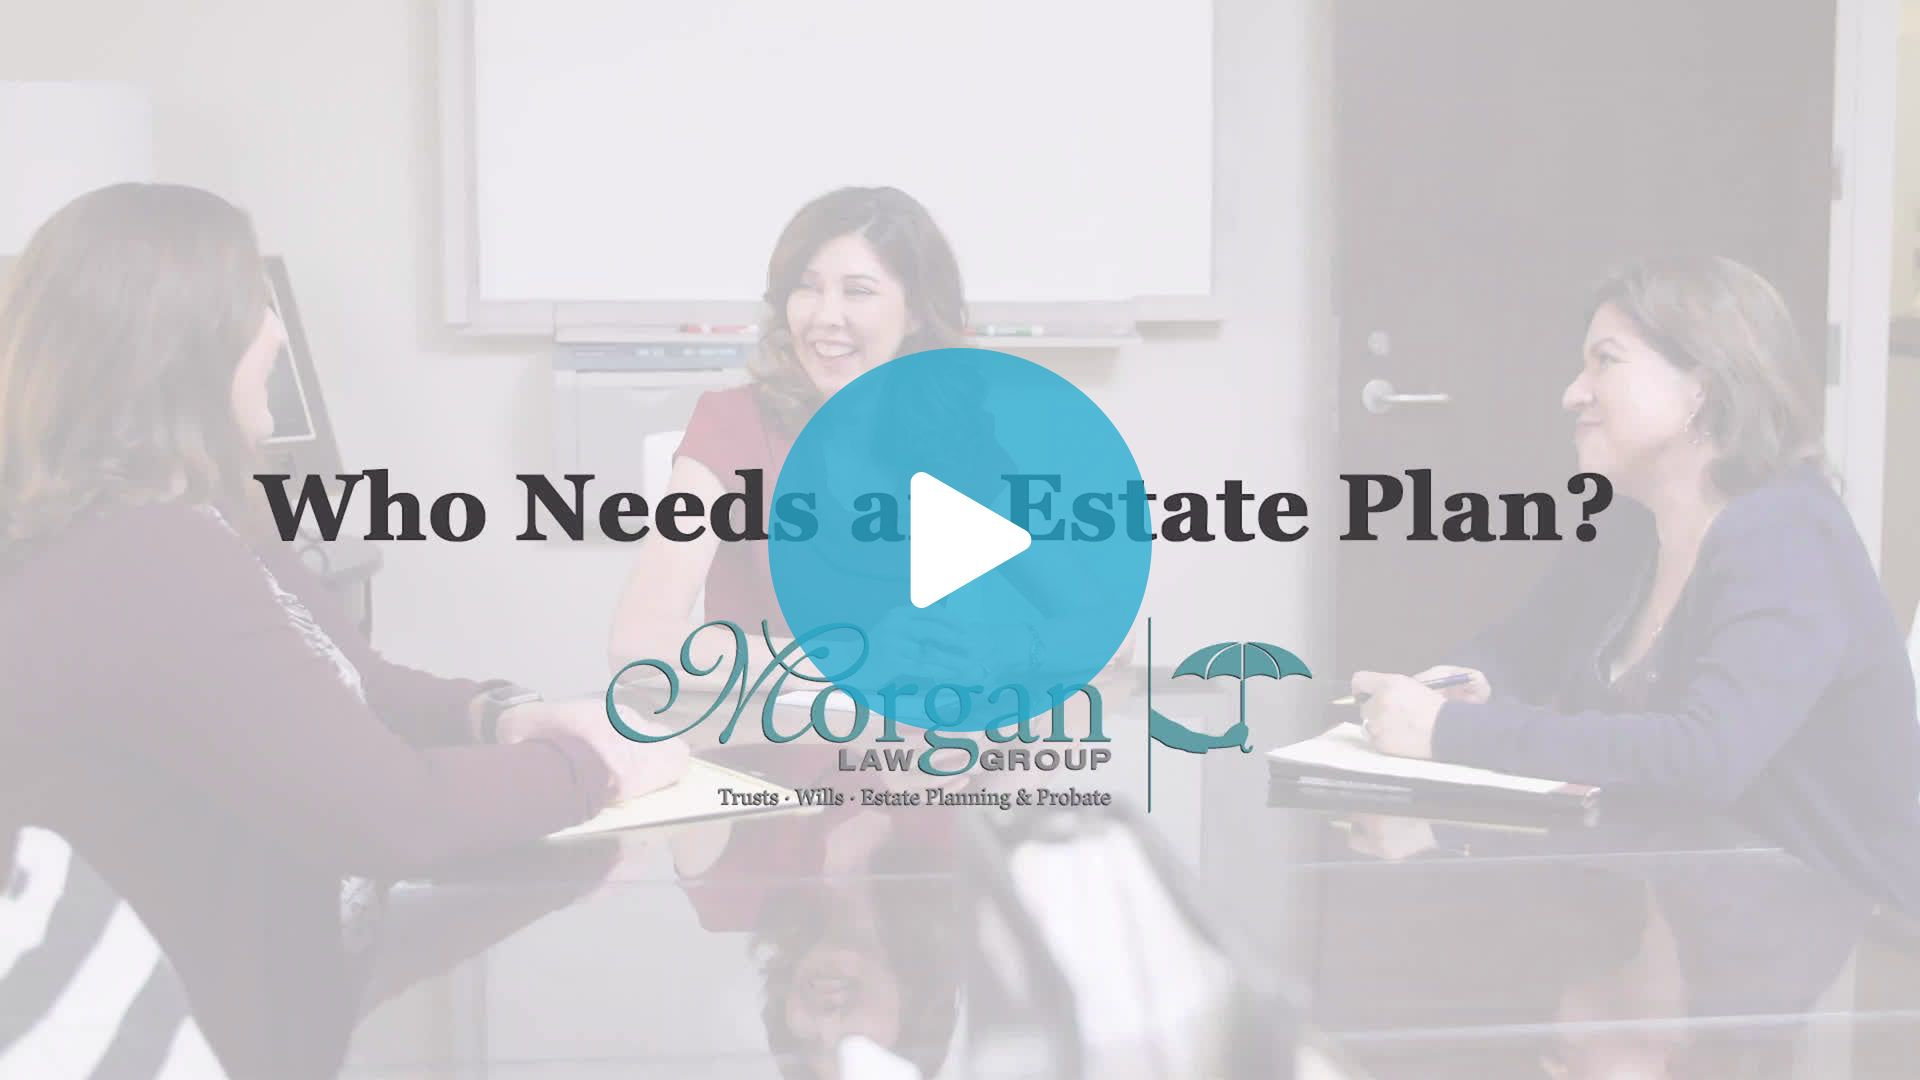 10.-Who-needs-an-estate-plan